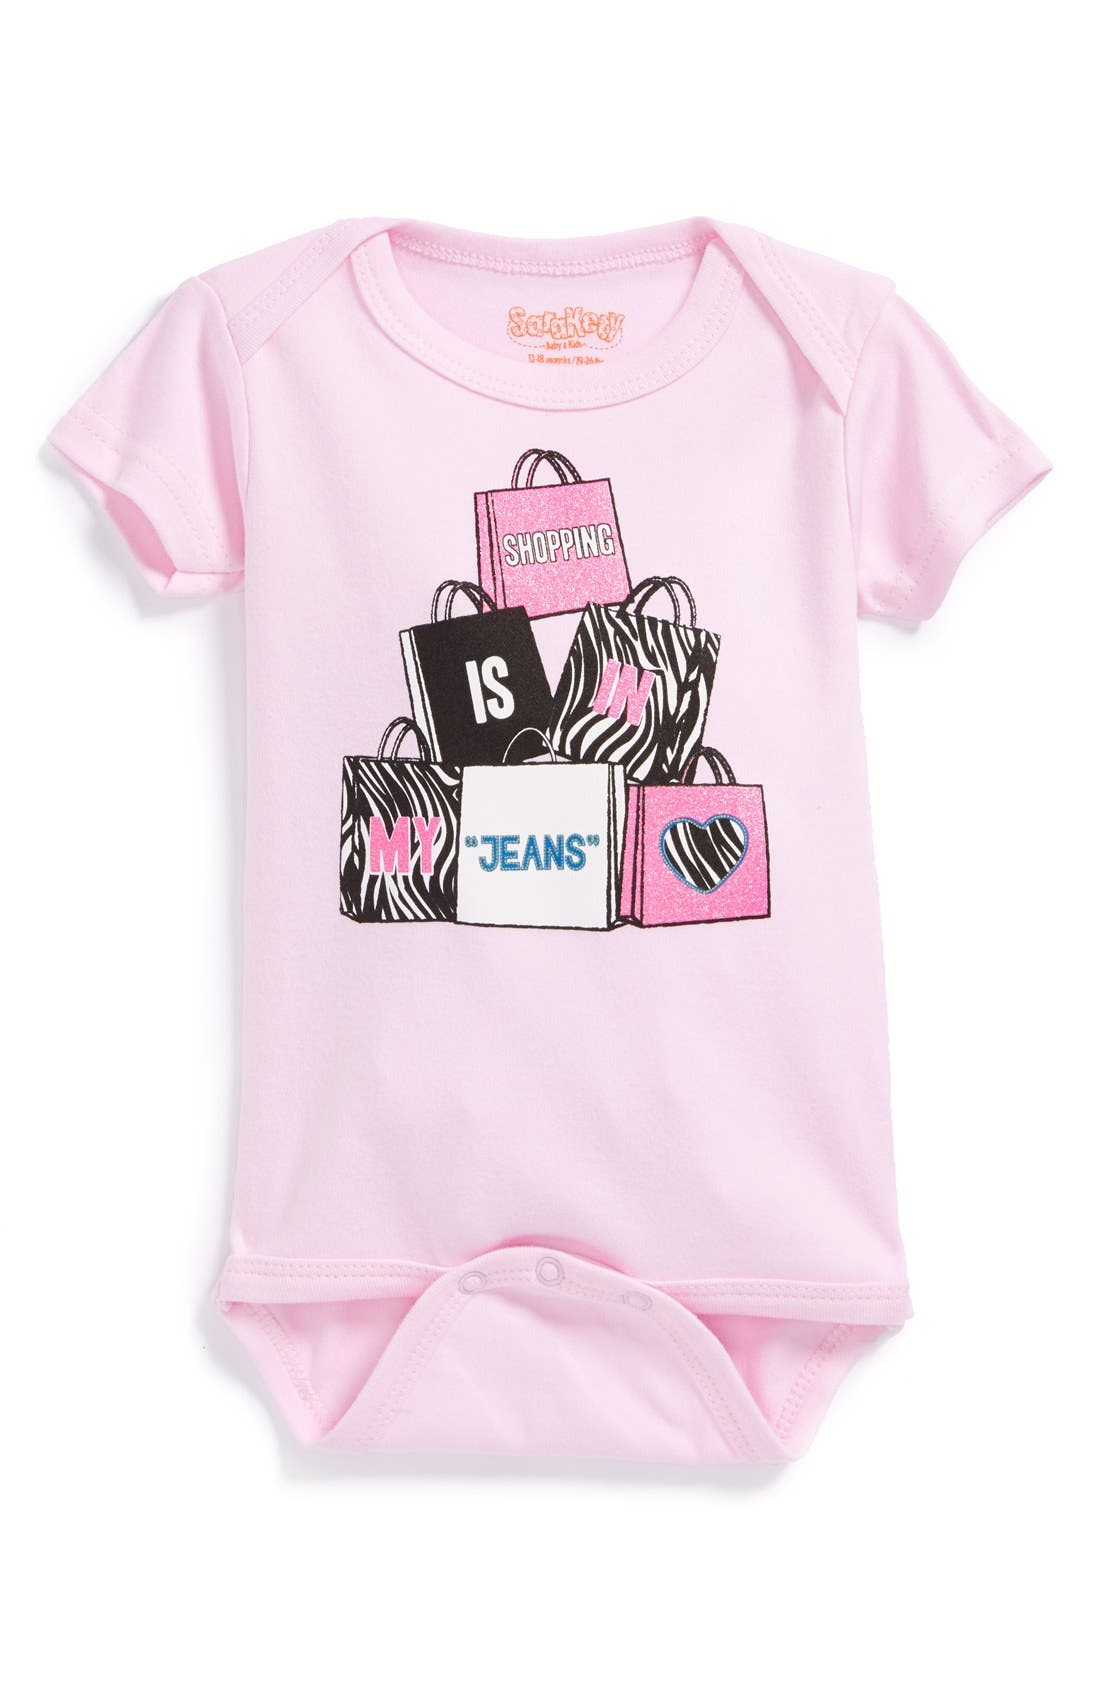 Main Image - Sara Kety Baby & Kids 'Shopping Jeans' Short Sleeve Bodysuit (Baby Girls)